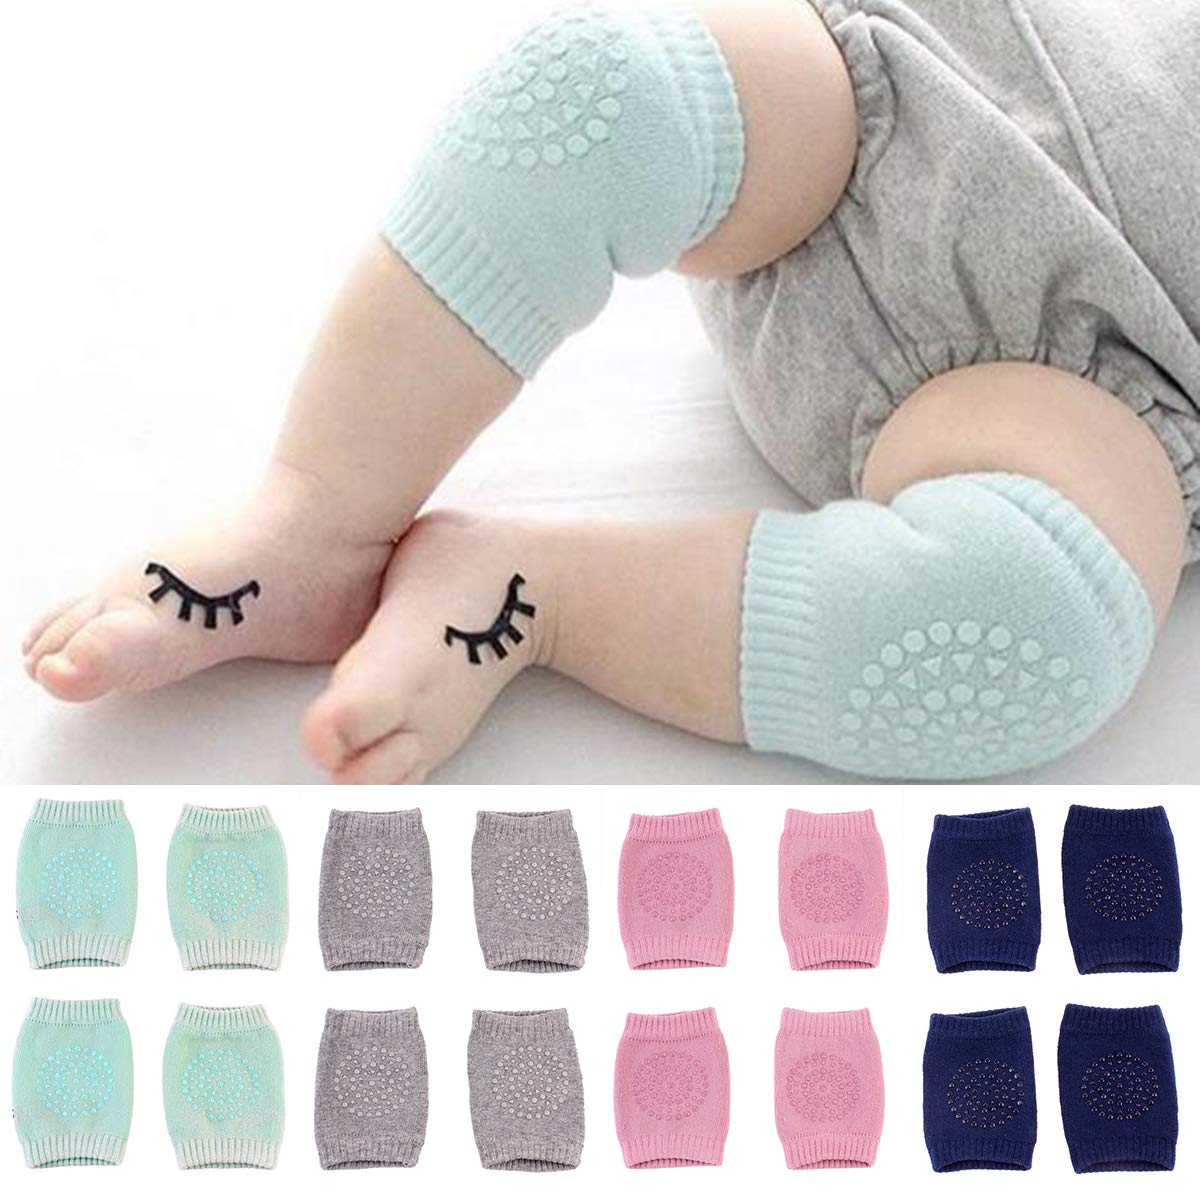 puseky 1 Pair Baby Boy Girl Non-Slip Knee Pads Support Safety Soft Knee Wrap for Crawling Walking